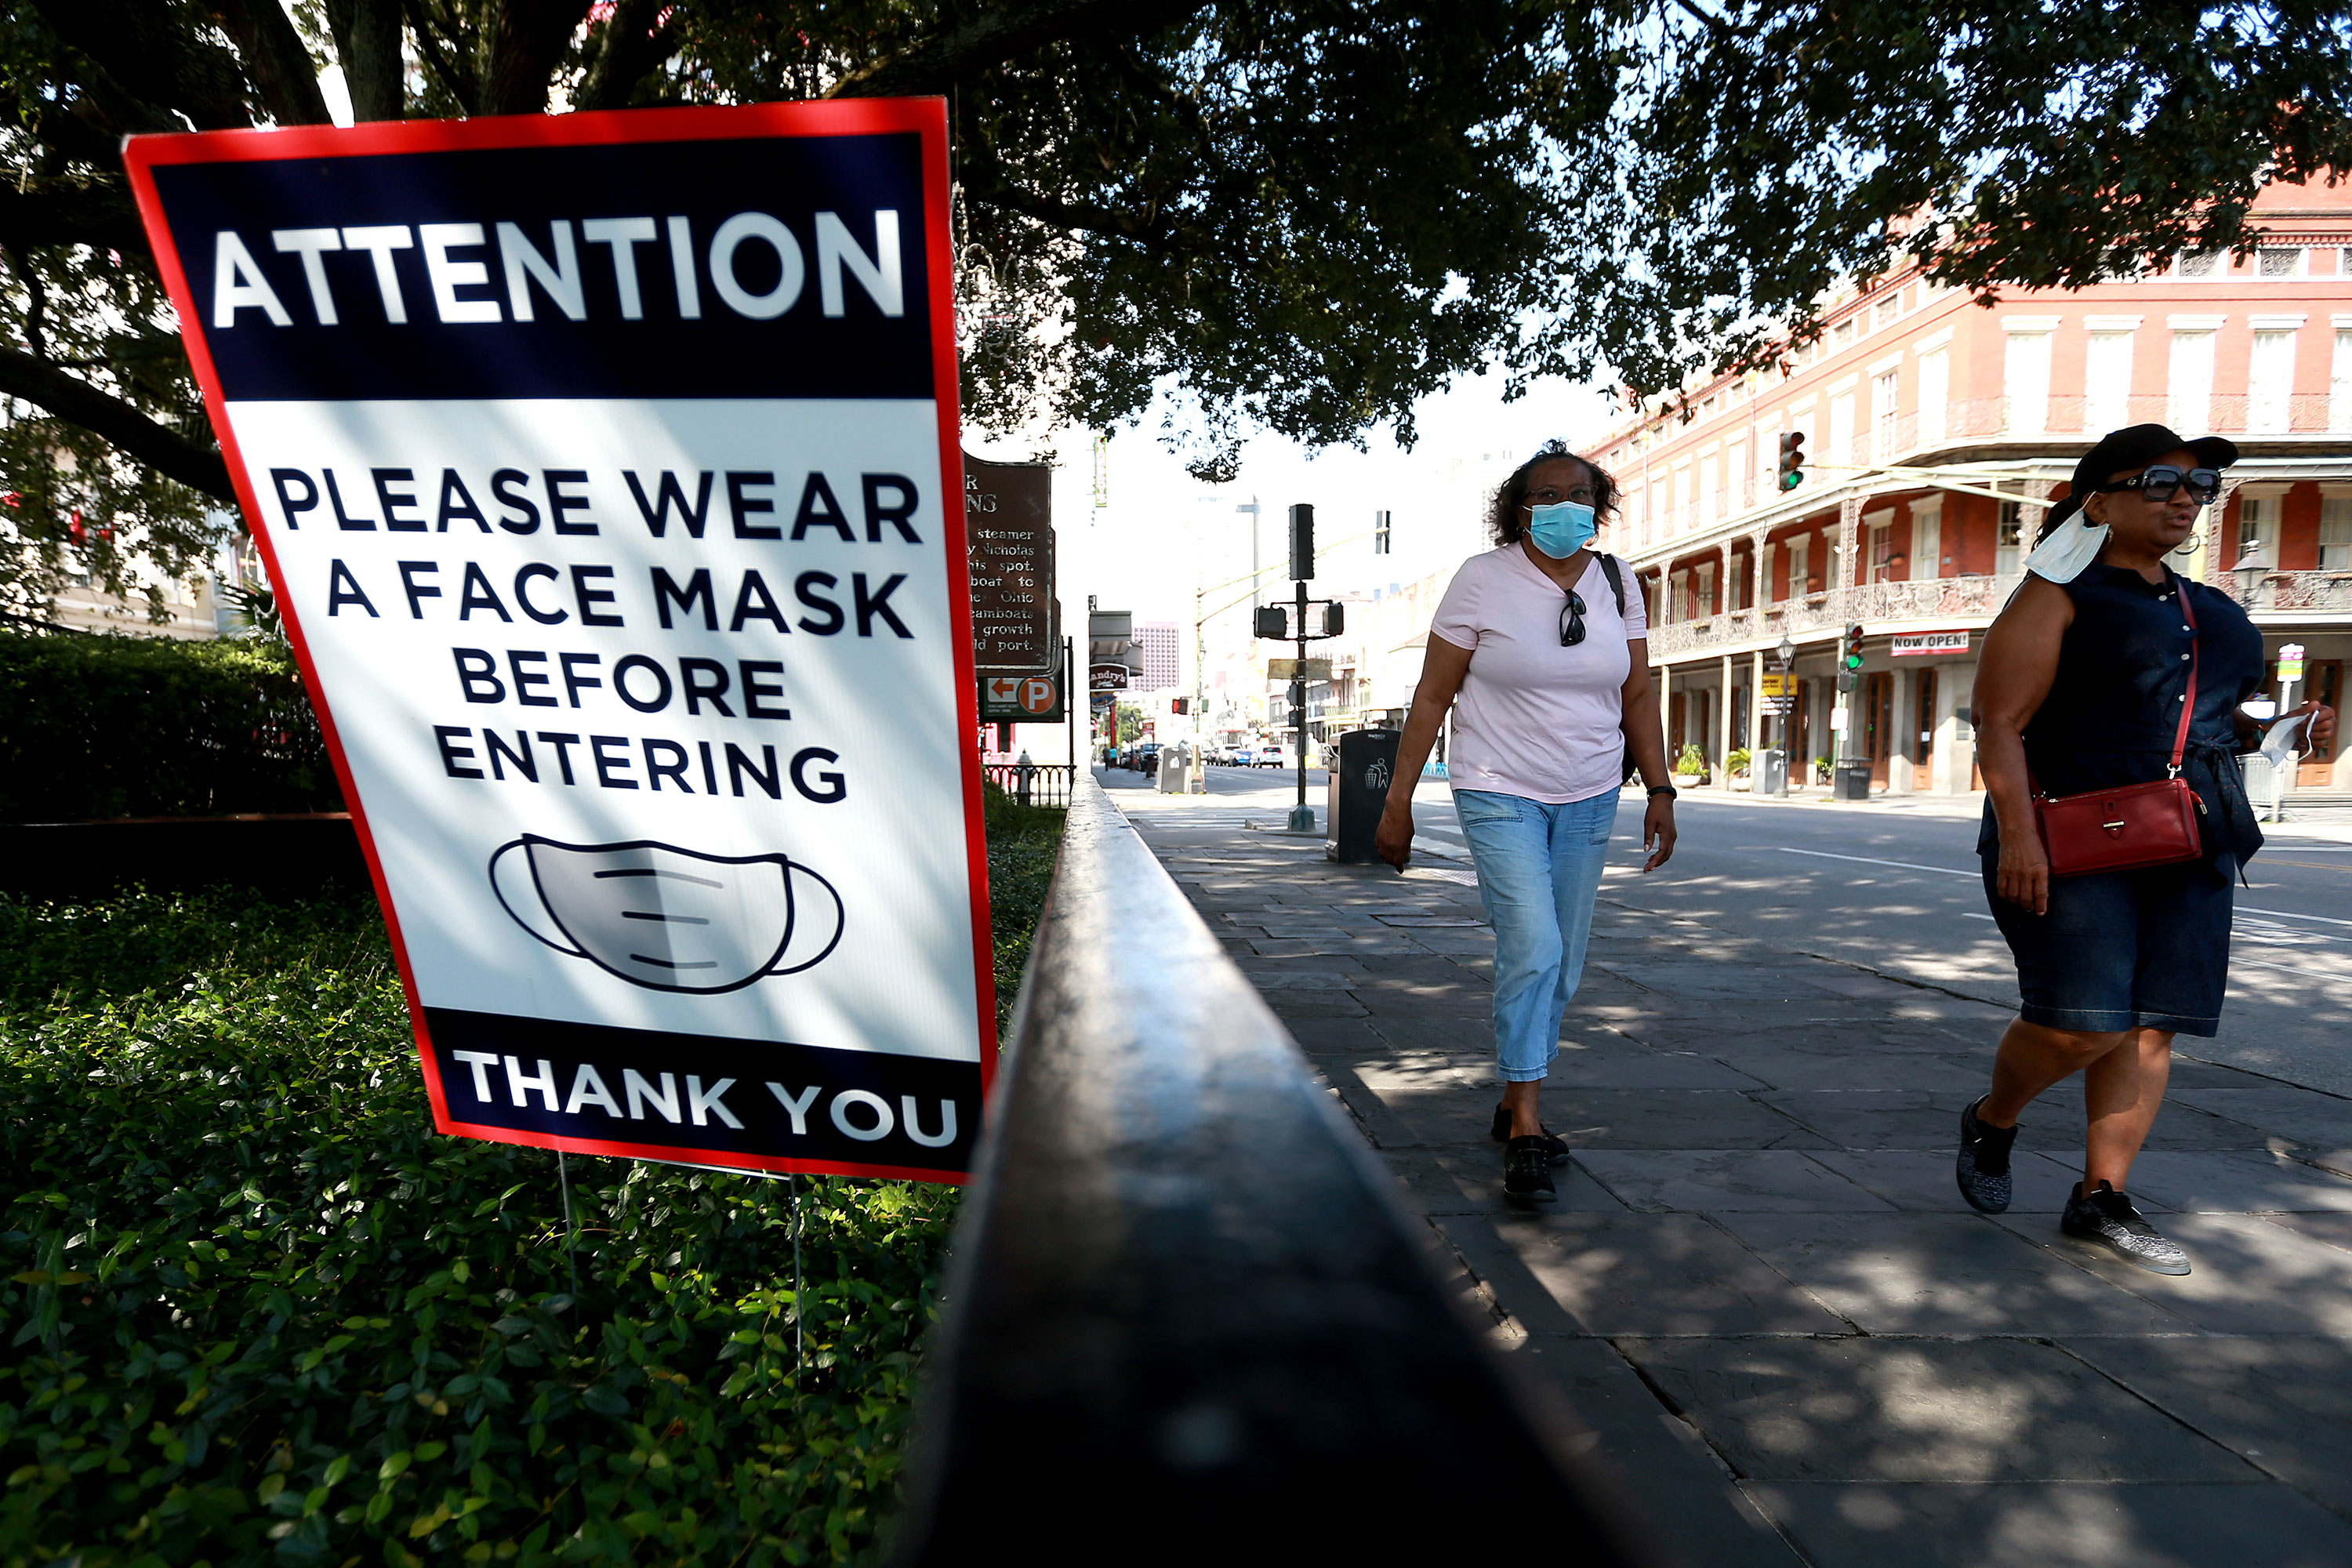 People walk past face mask signs along Decatur Street in the French Quarter of New Orleans on July 14.